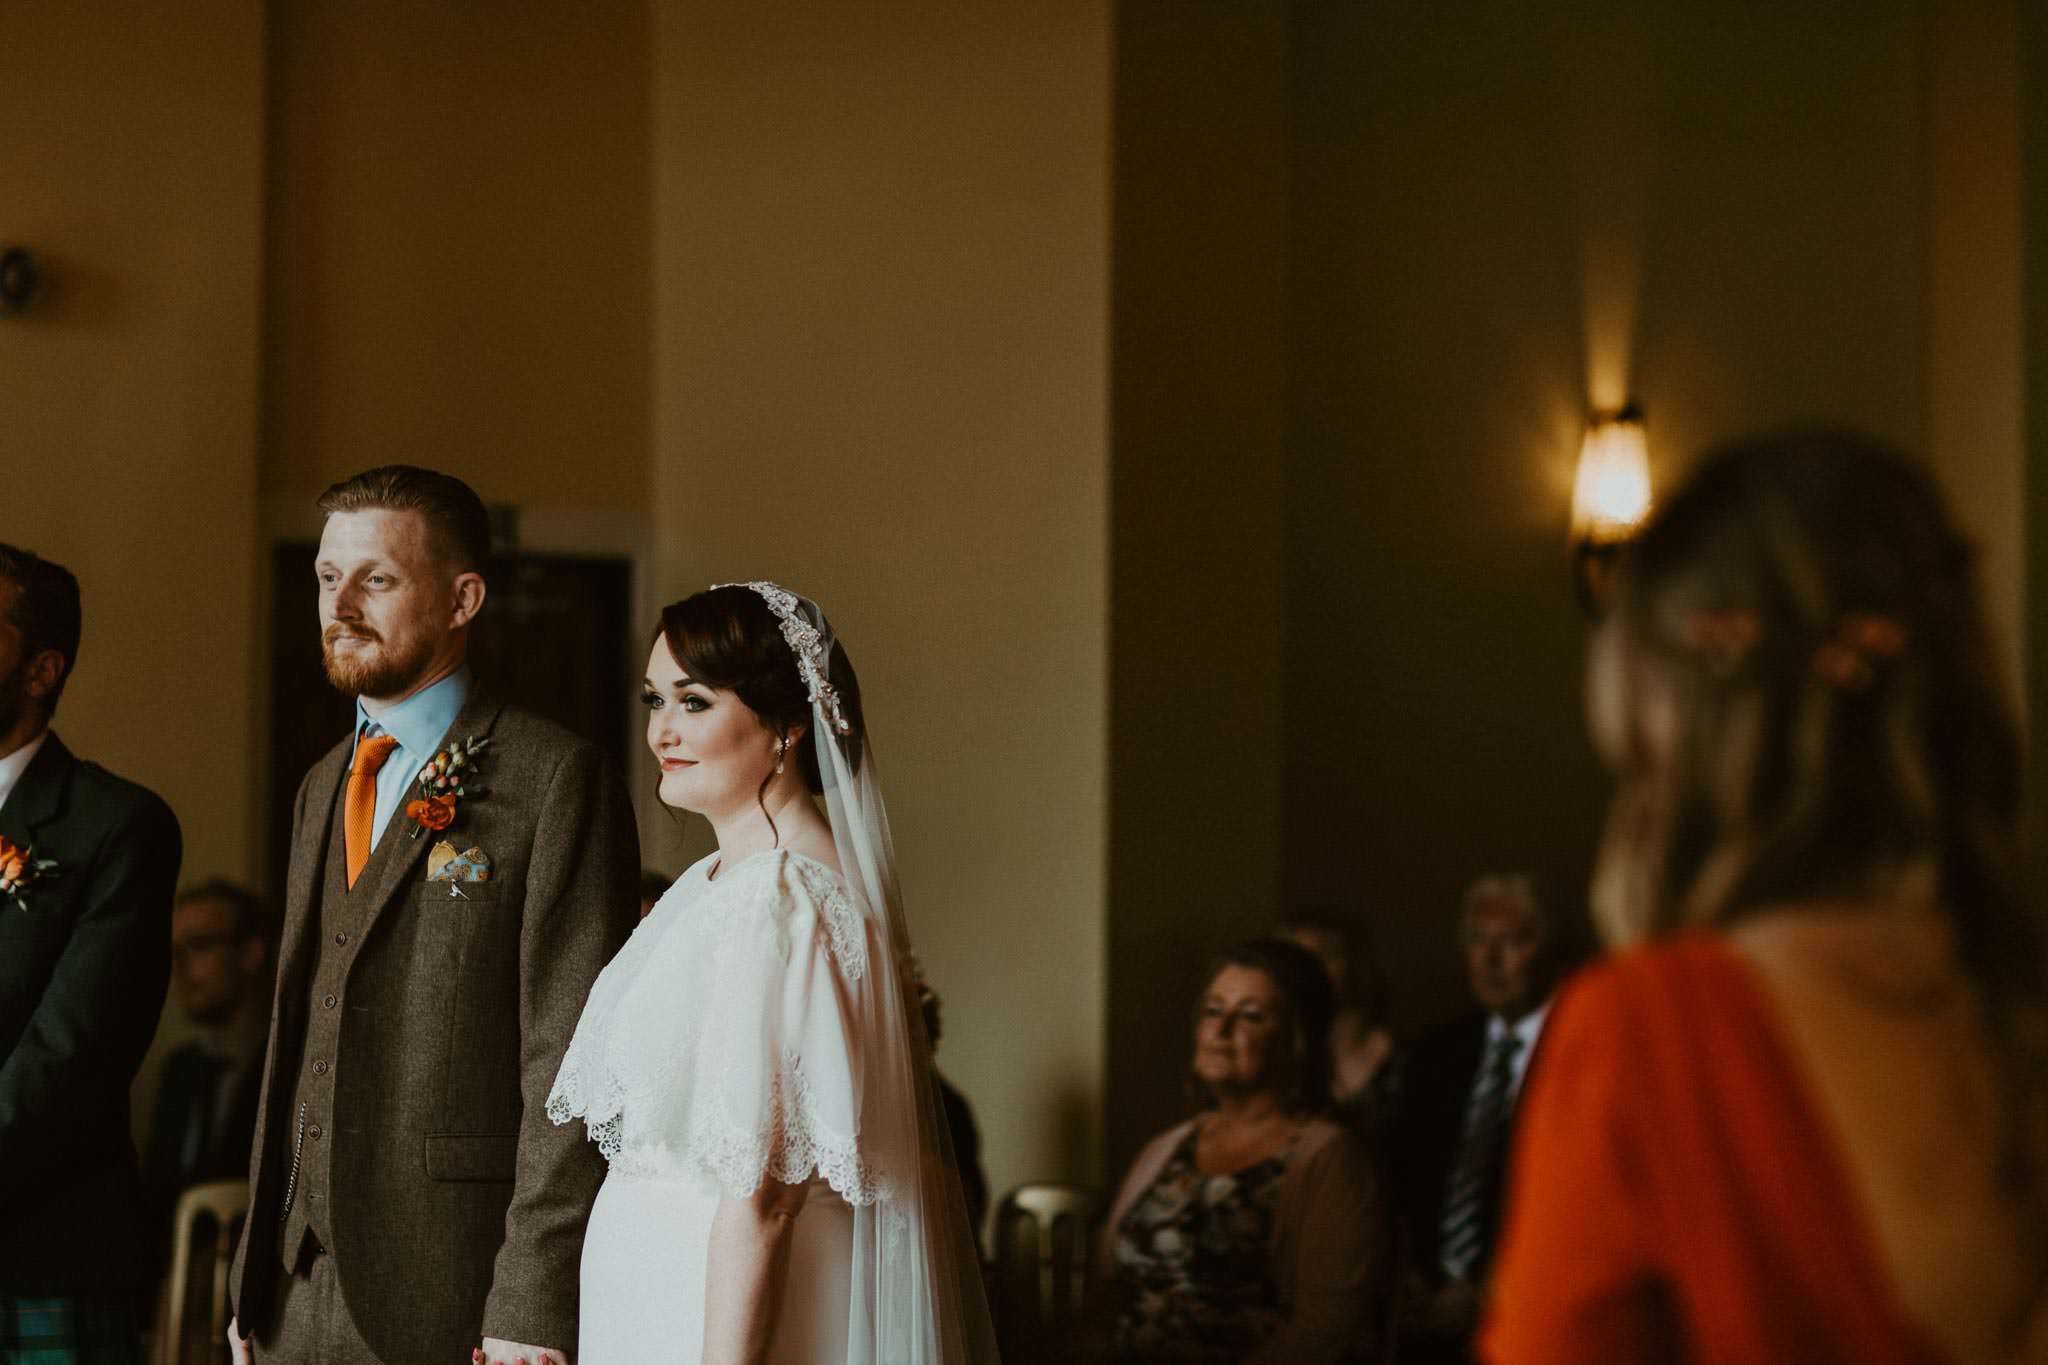 scottish-wedding-photographer-055